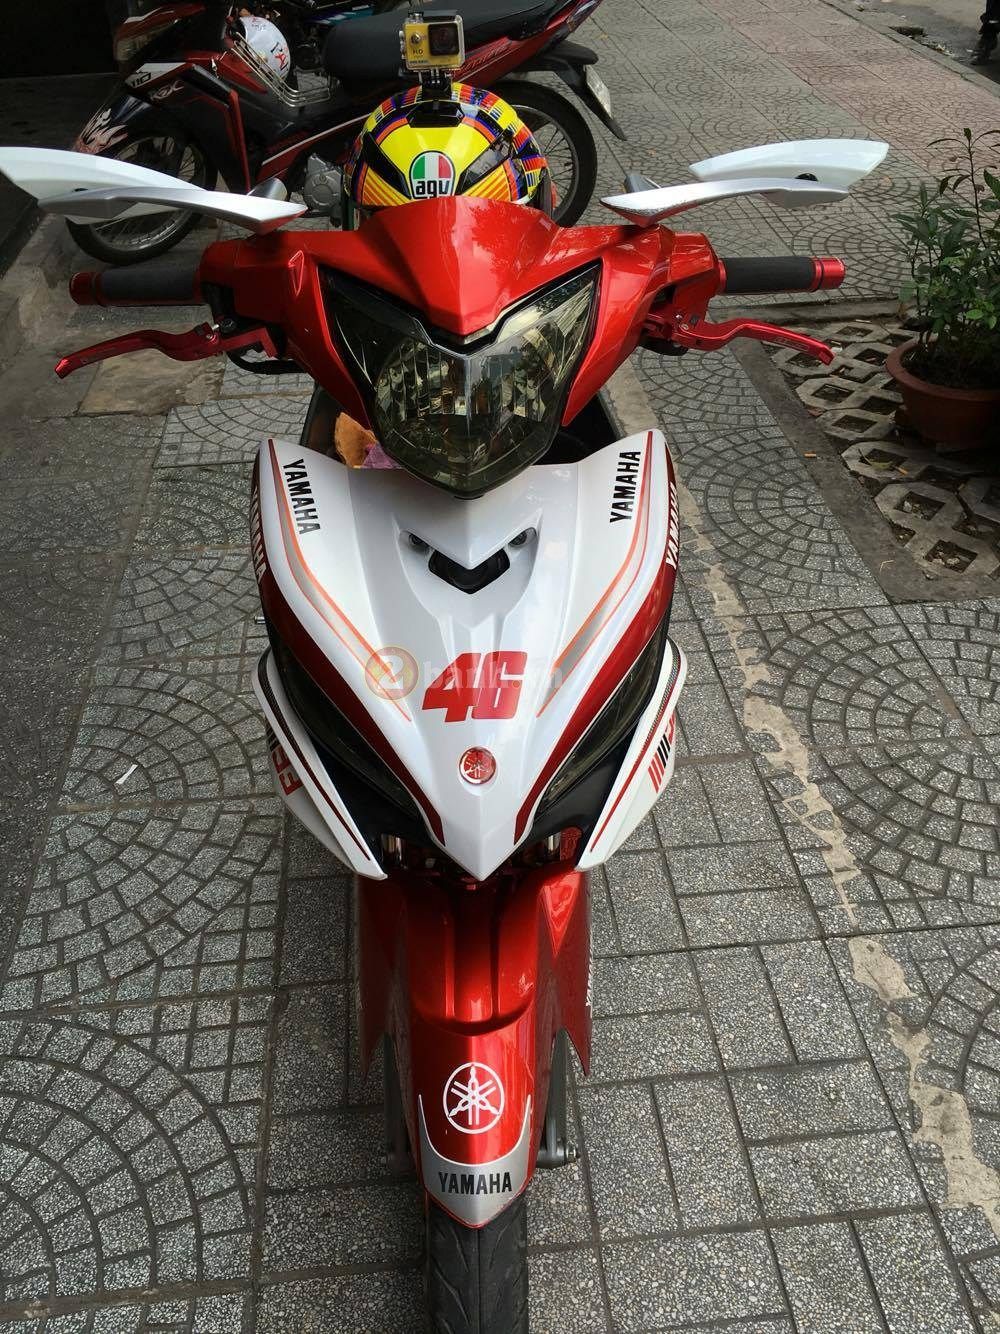 Exciter 135 do nhe voi do choi chat - 2